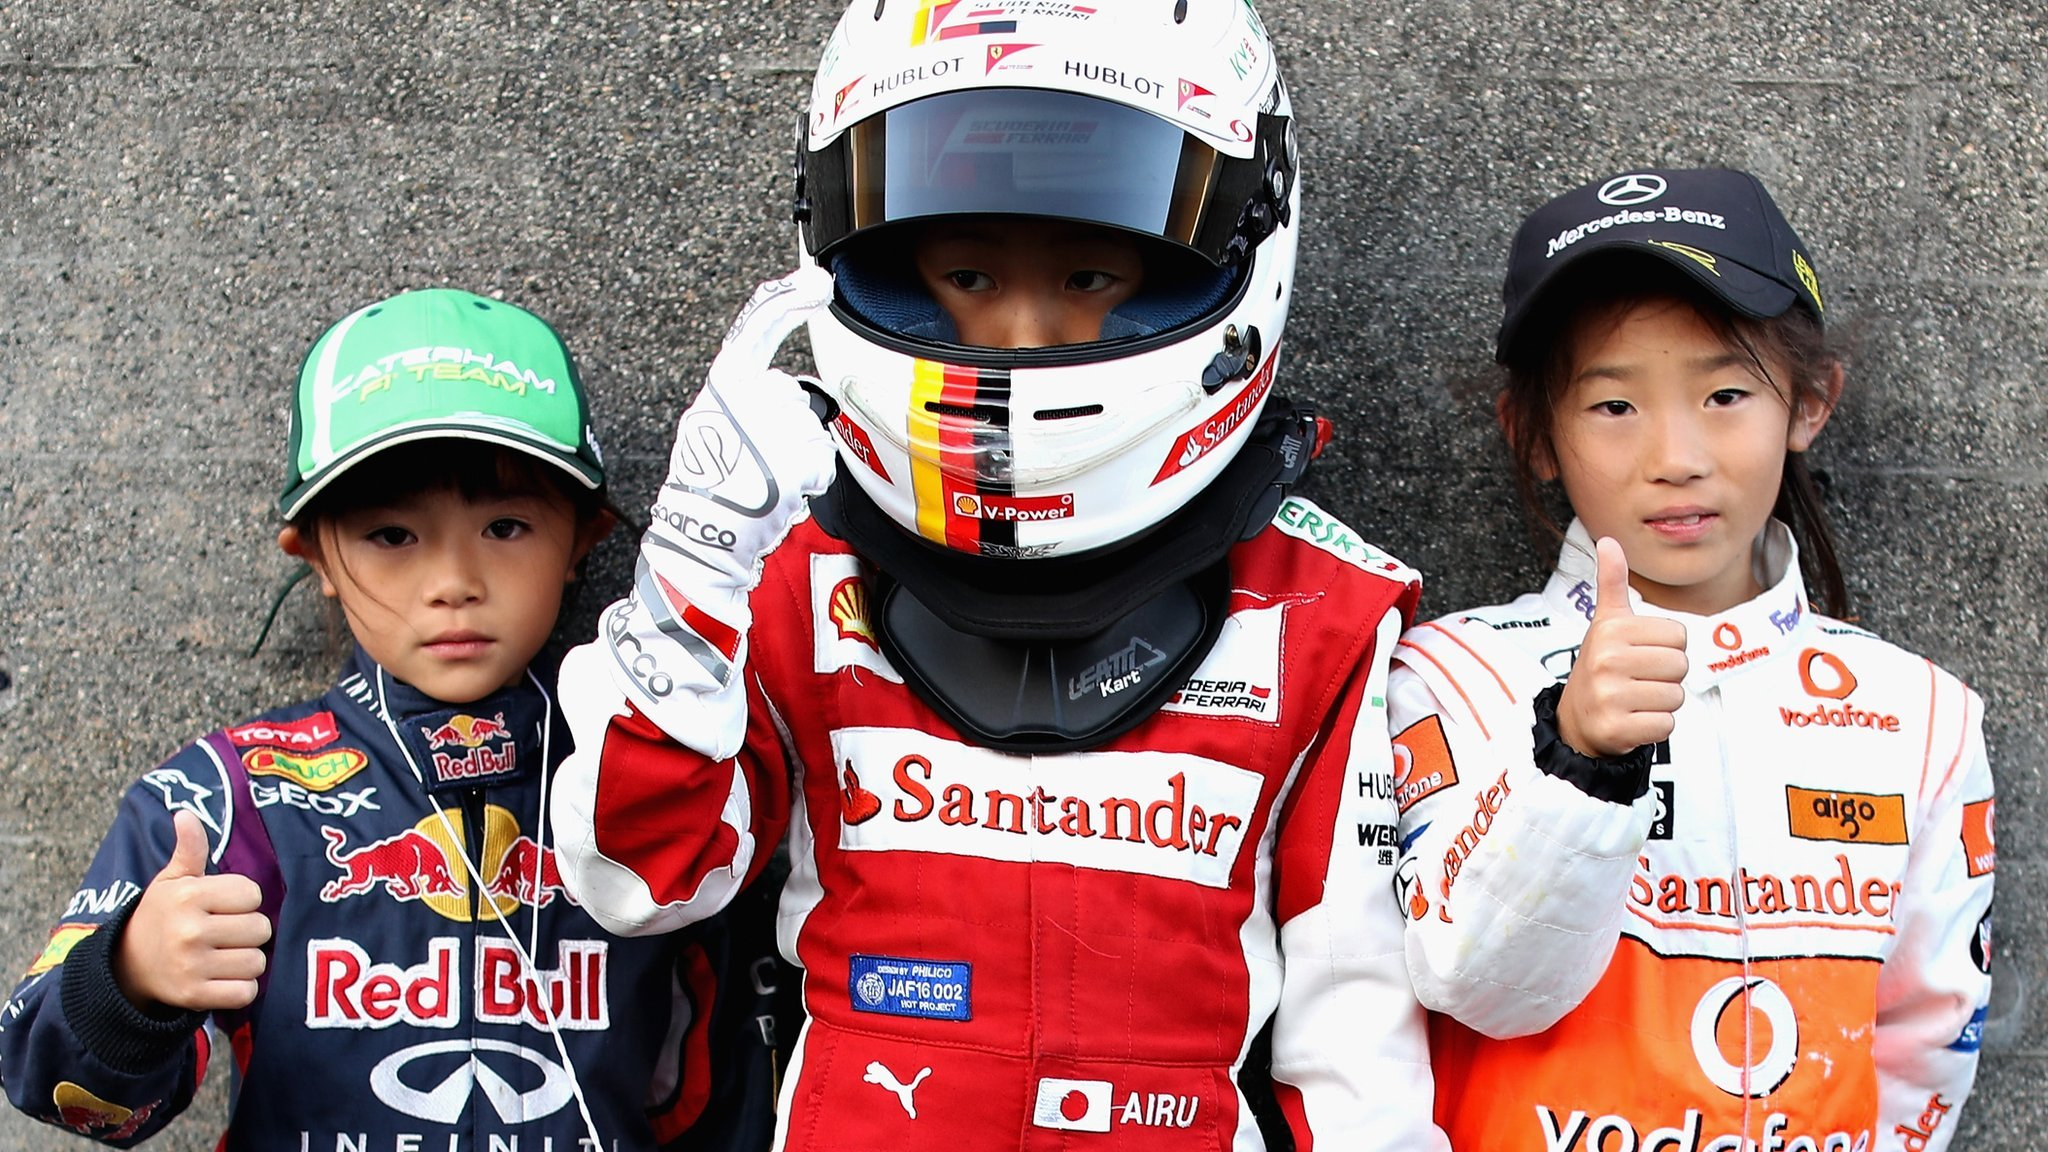 'Grid kids' to replace 'grid girls' in F1